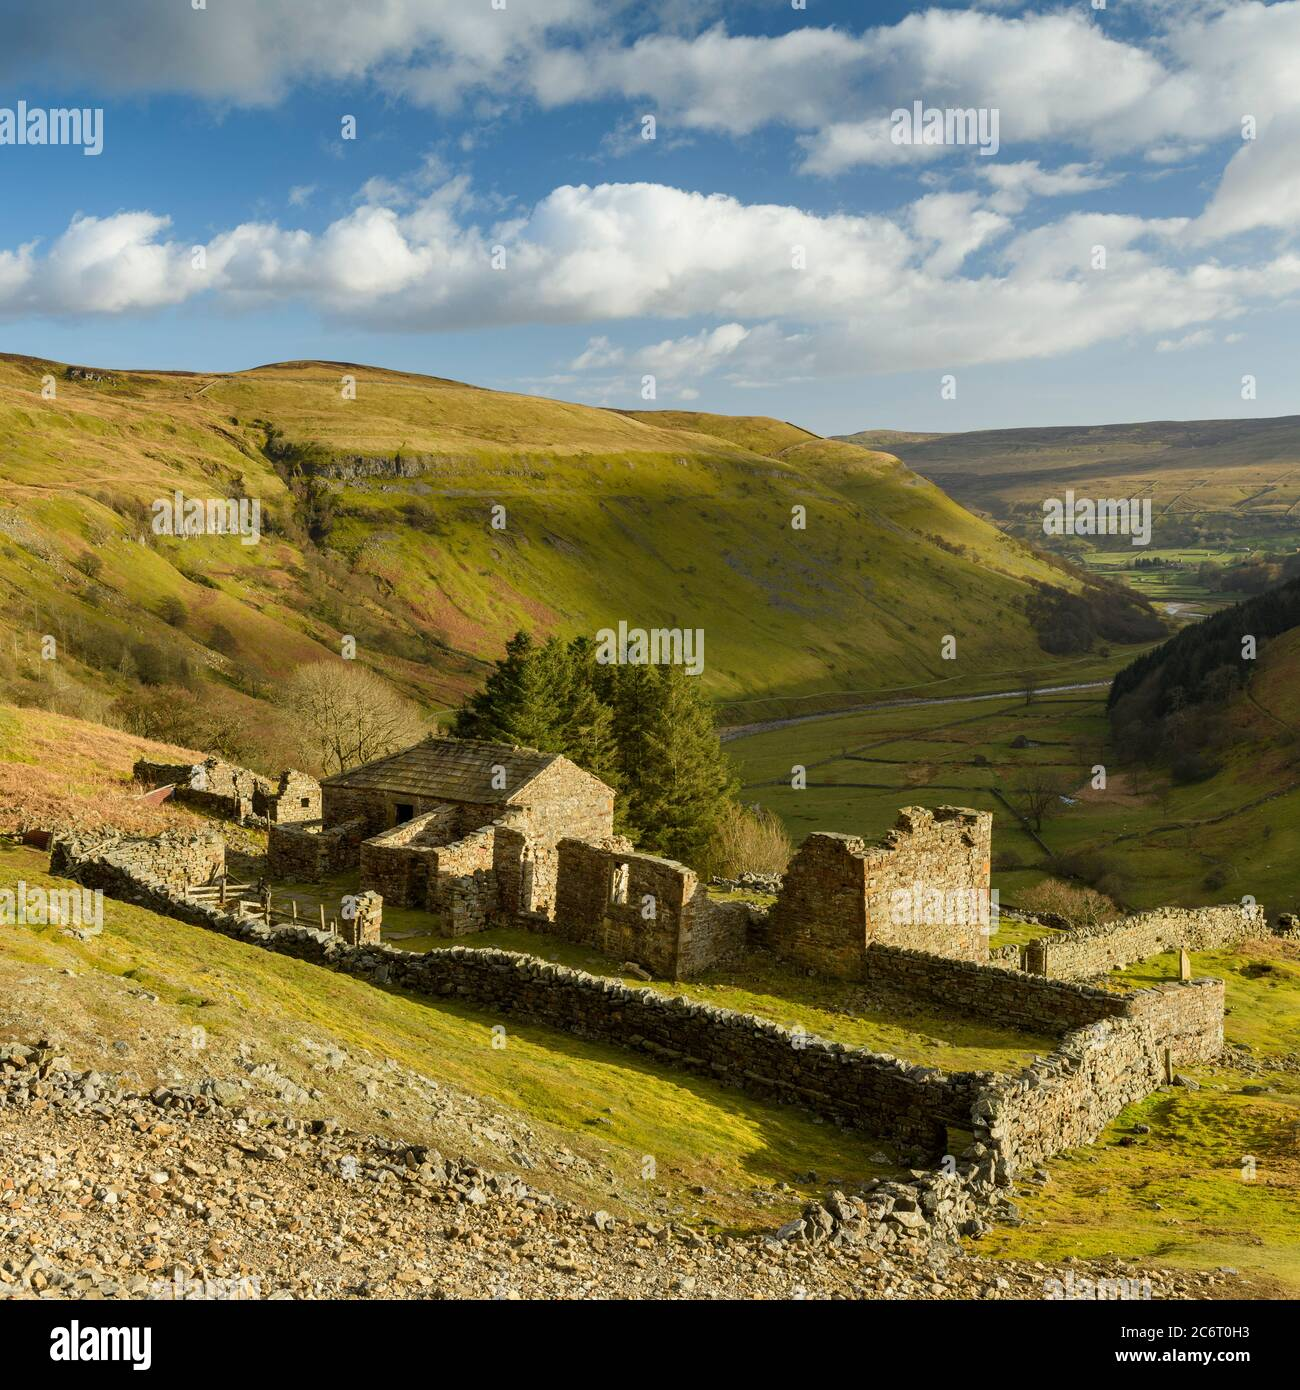 Crackpot Hall (old farmhouse ruins) high on remote sunlit hillside overlooking scenic rural Yorkshire Dales hills & valley (Swaledale) - England, UK. Stock Photo